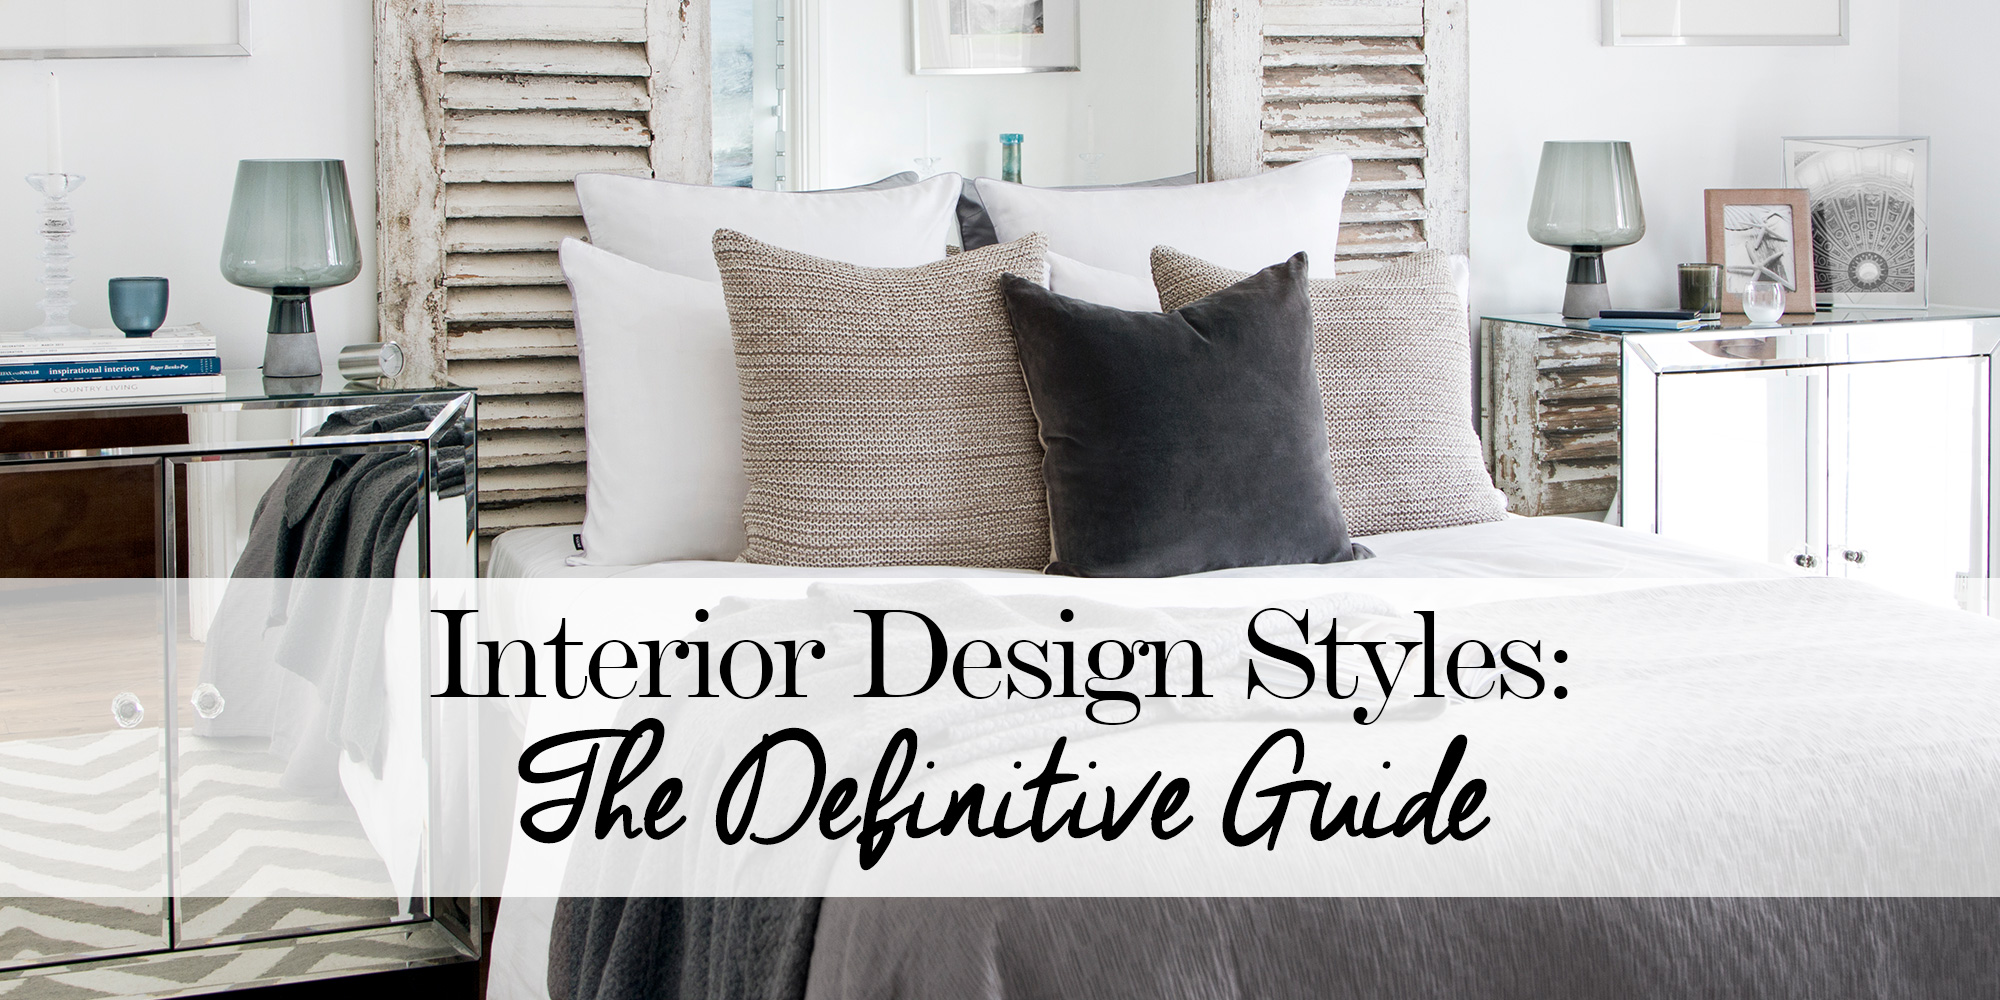 Excellent tips for interior design styles